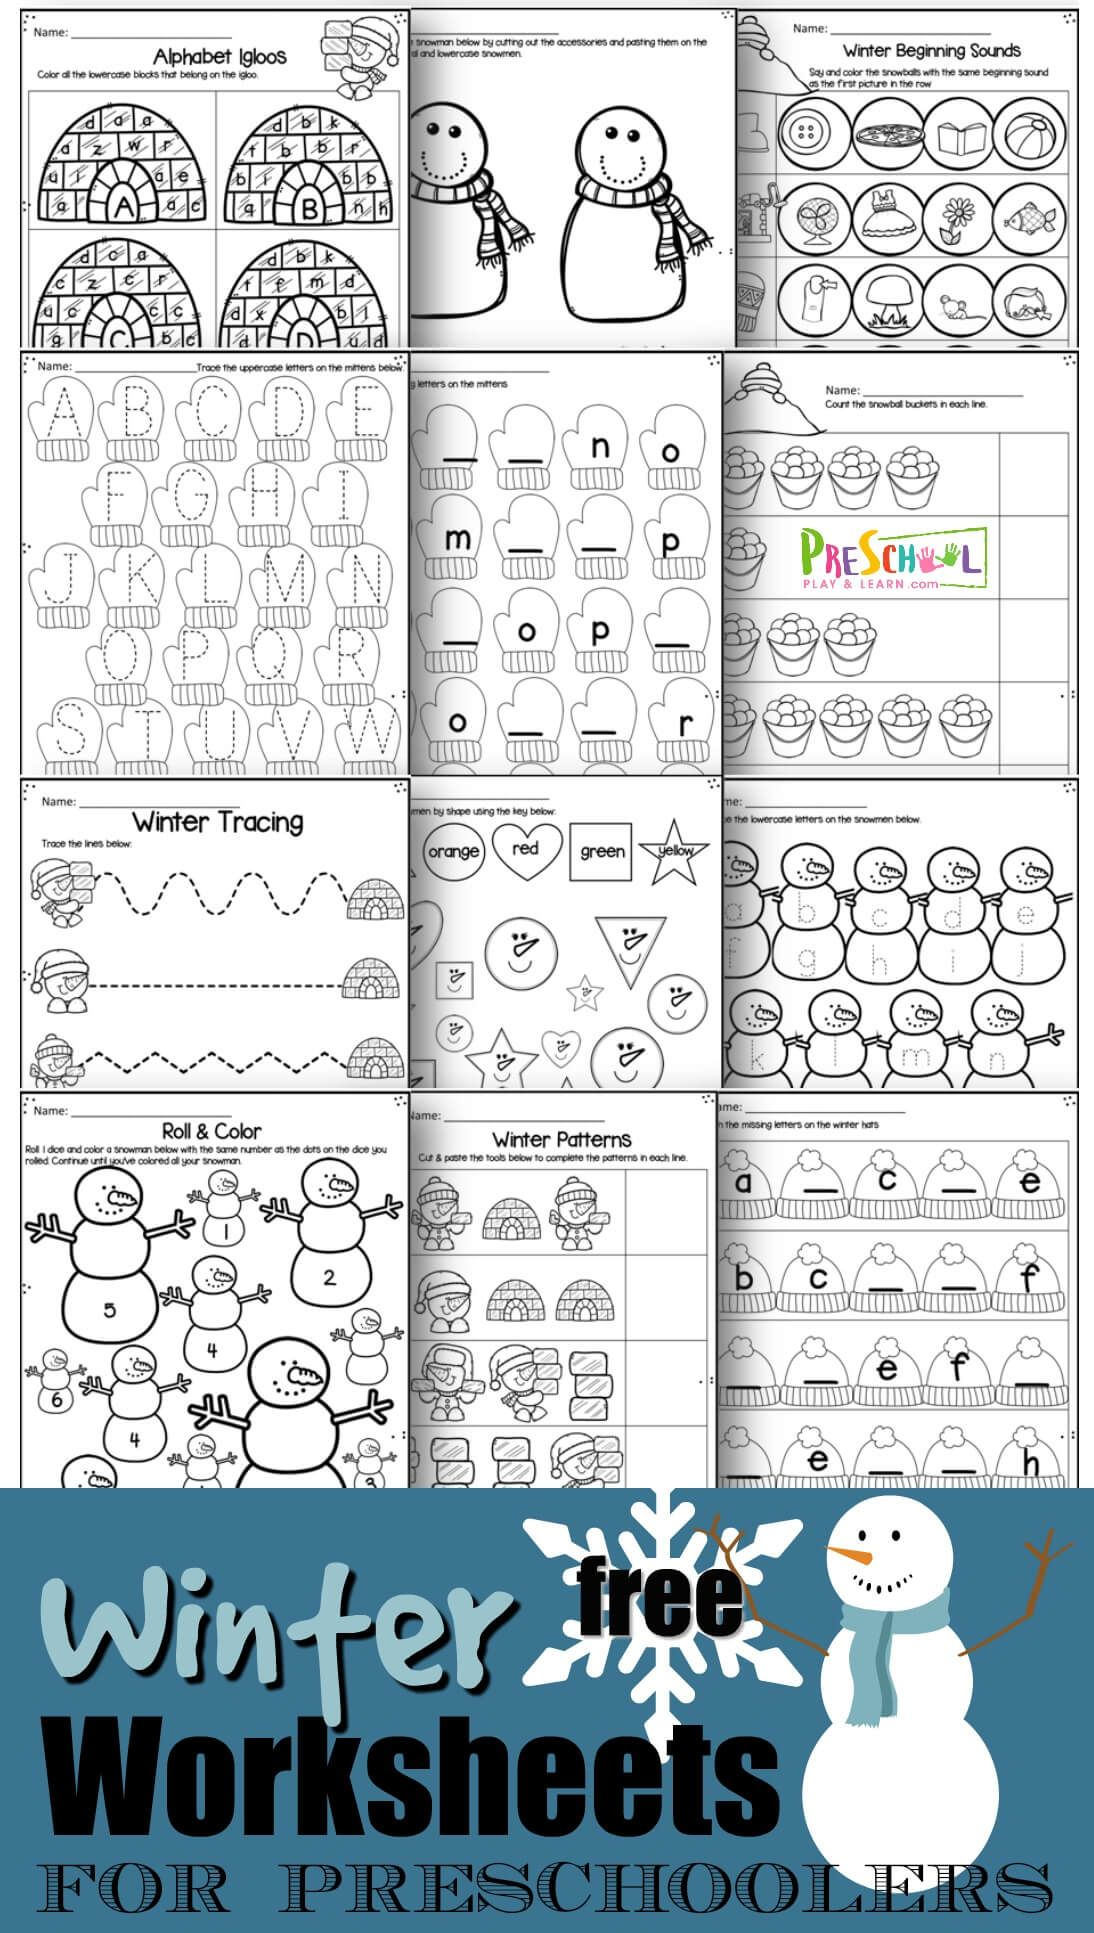 Free Winter Worksheets For Preschoolers